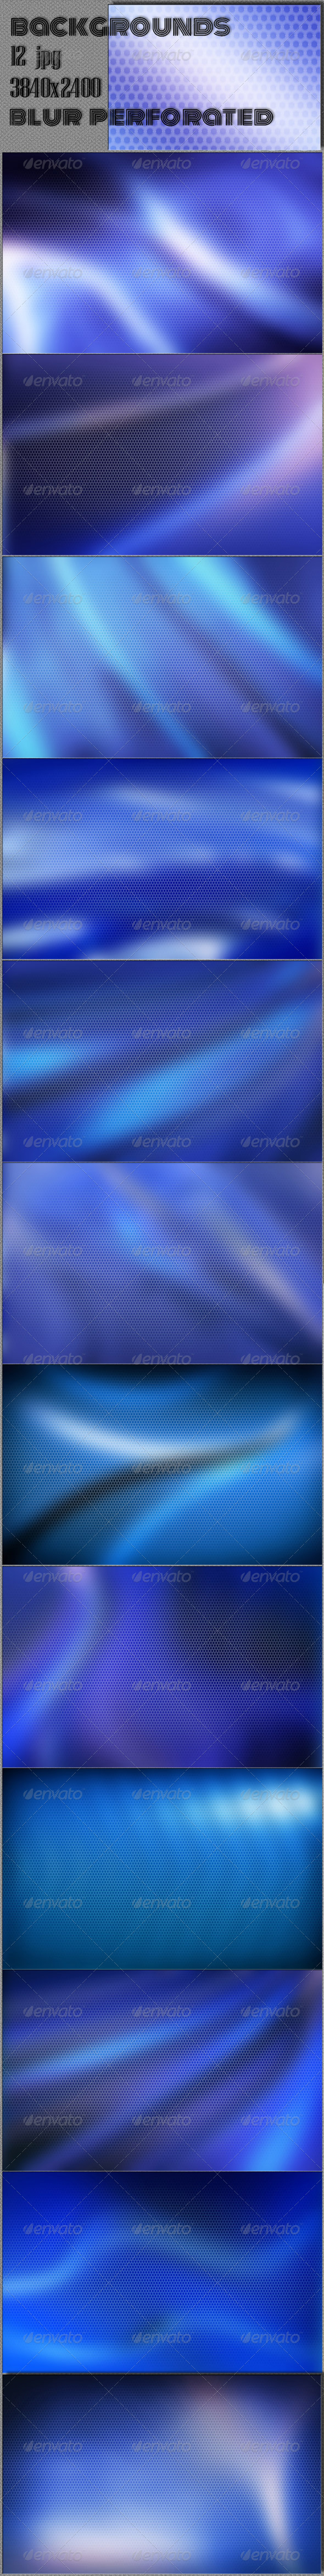 GraphicRiver Blurred Perforated 4K Background 7489134